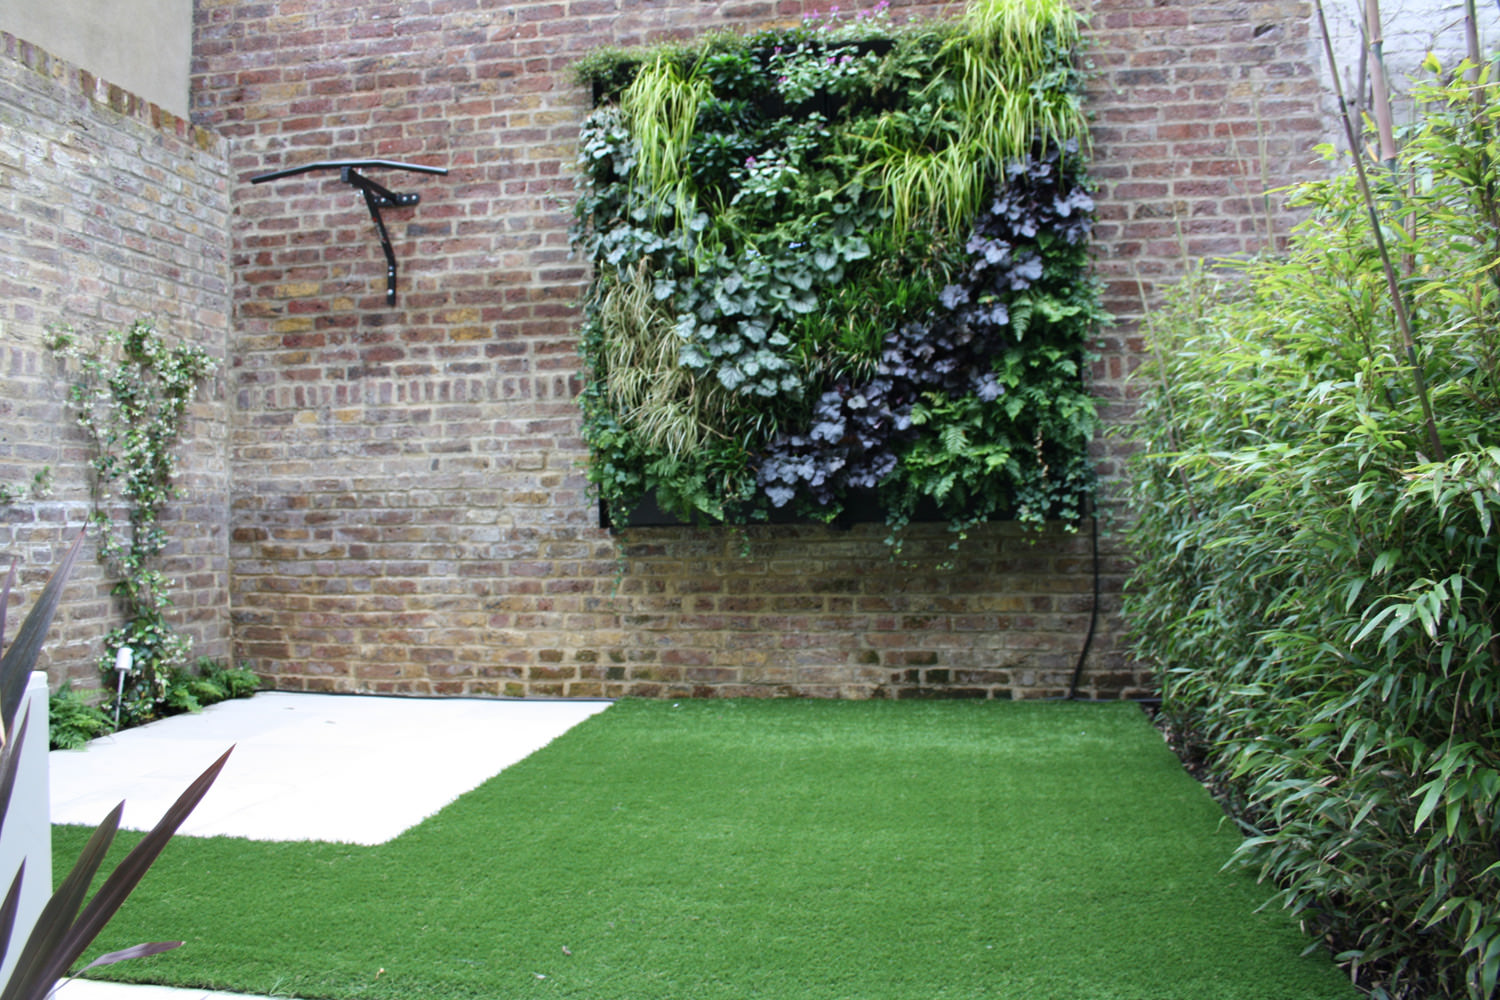 Top 10 london garden designs garden club london for Garden designs images pictures